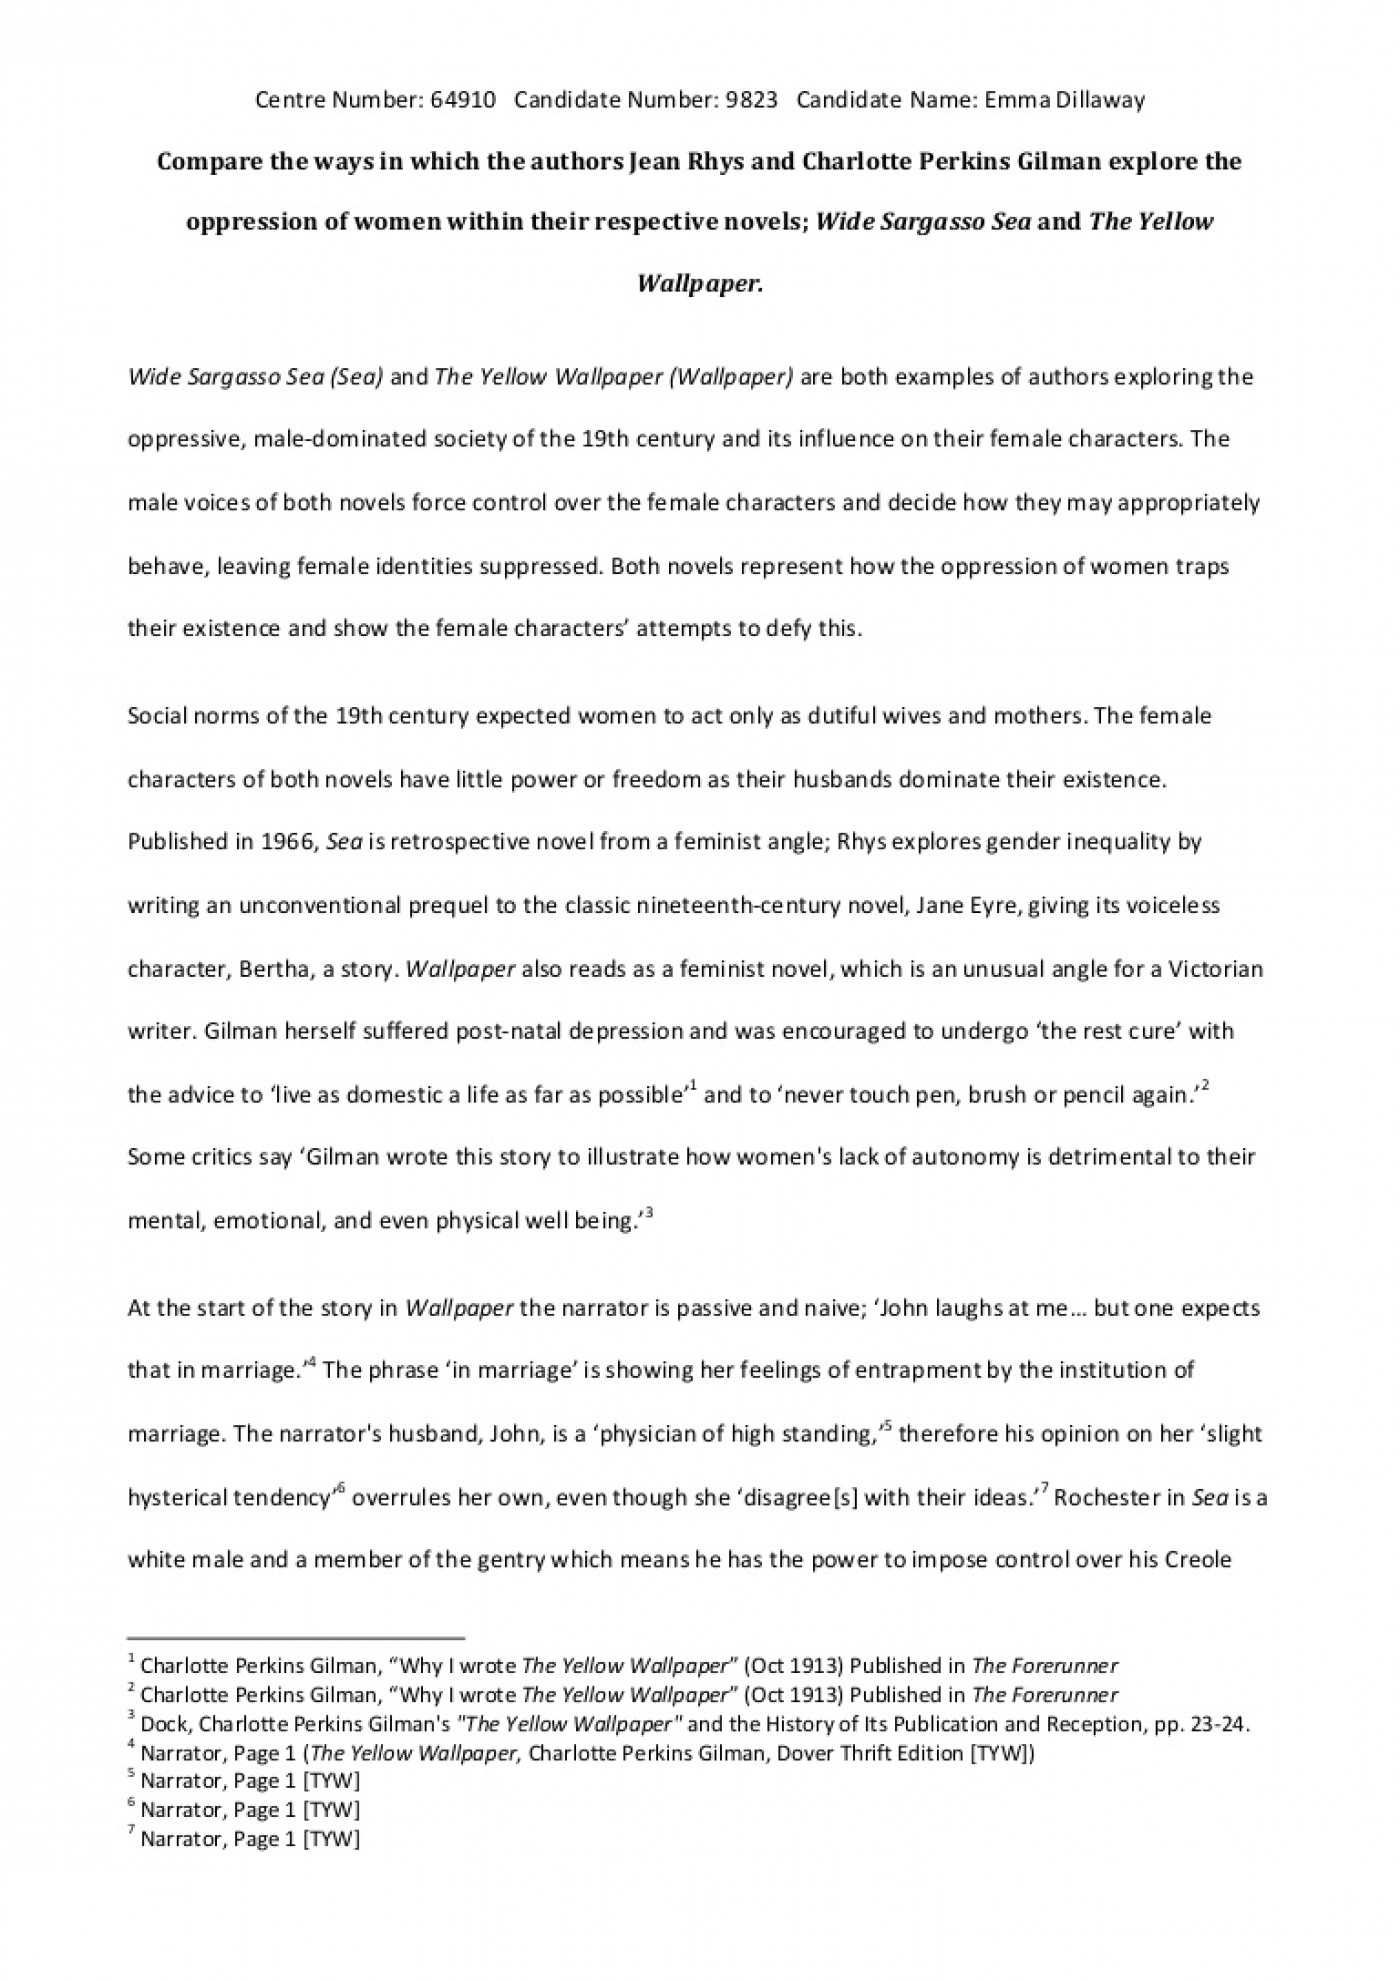 001 The Yellow Wallpaper Essay Phpapp01 Thumbnail 4cbu003d1368715597 Top Feminism Research Paper Outline Conclusion 1400